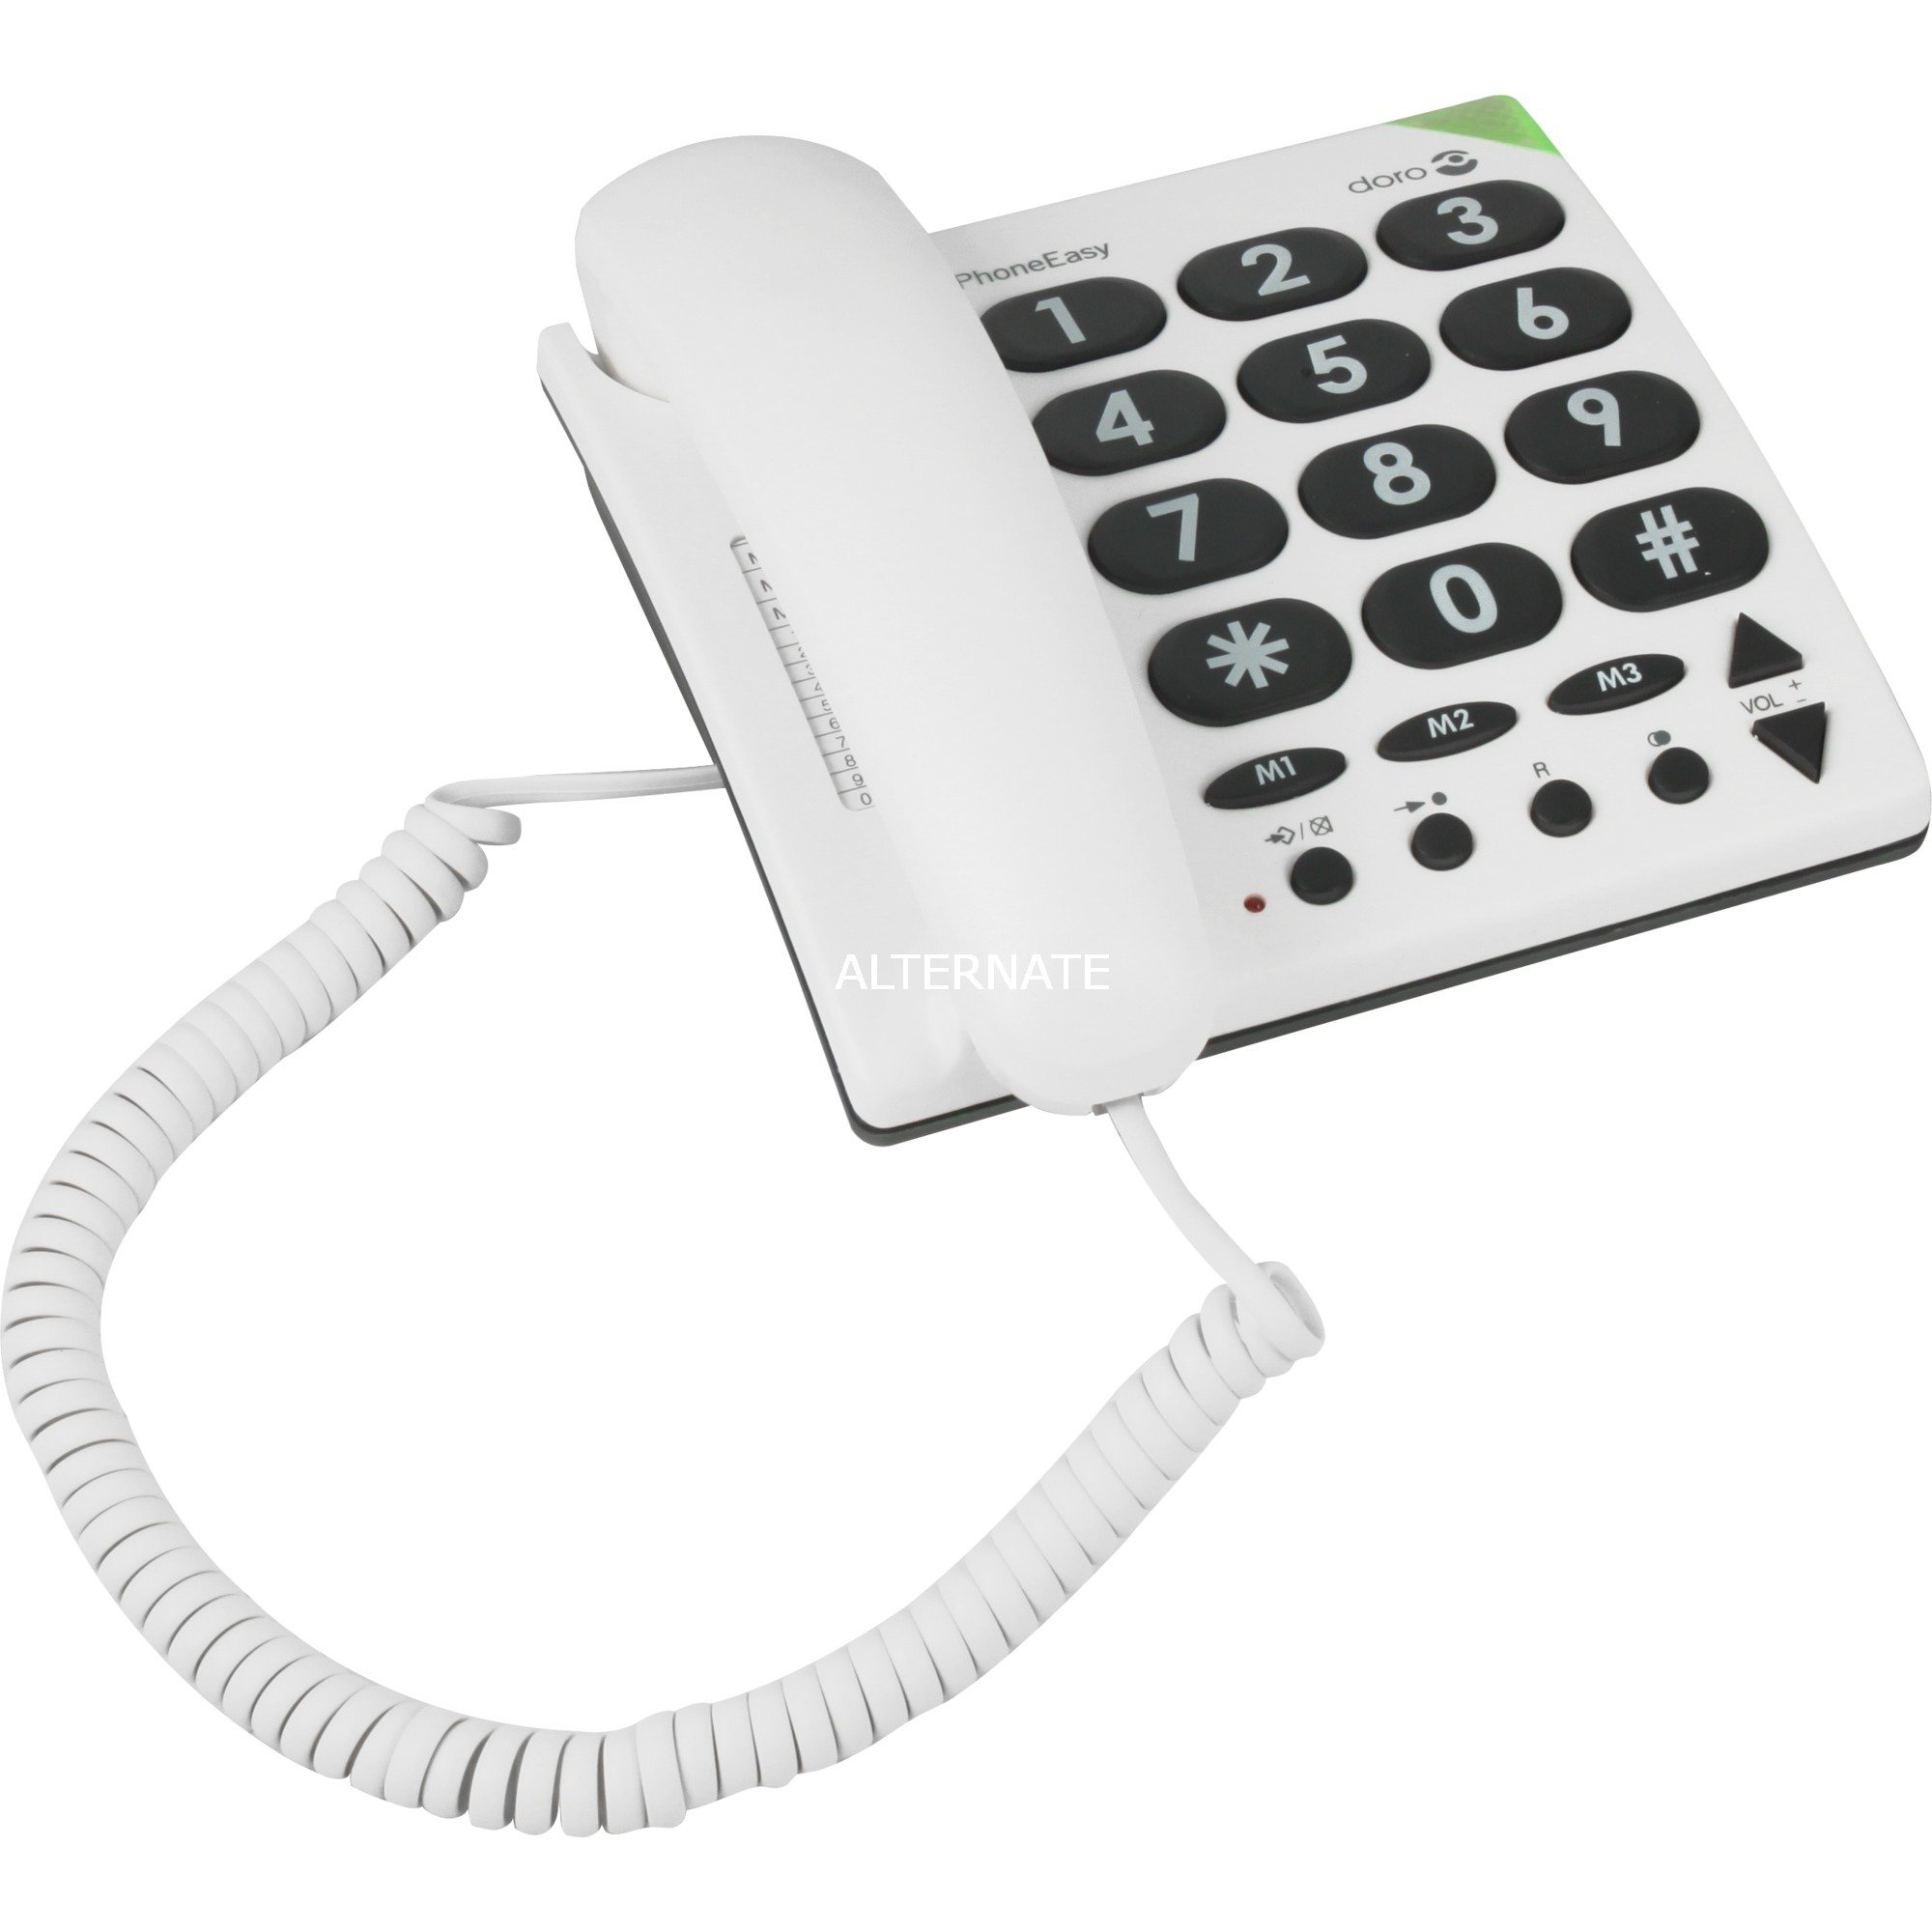 phoneeasy-311c-analog-telephone-hvid-analog-telefon